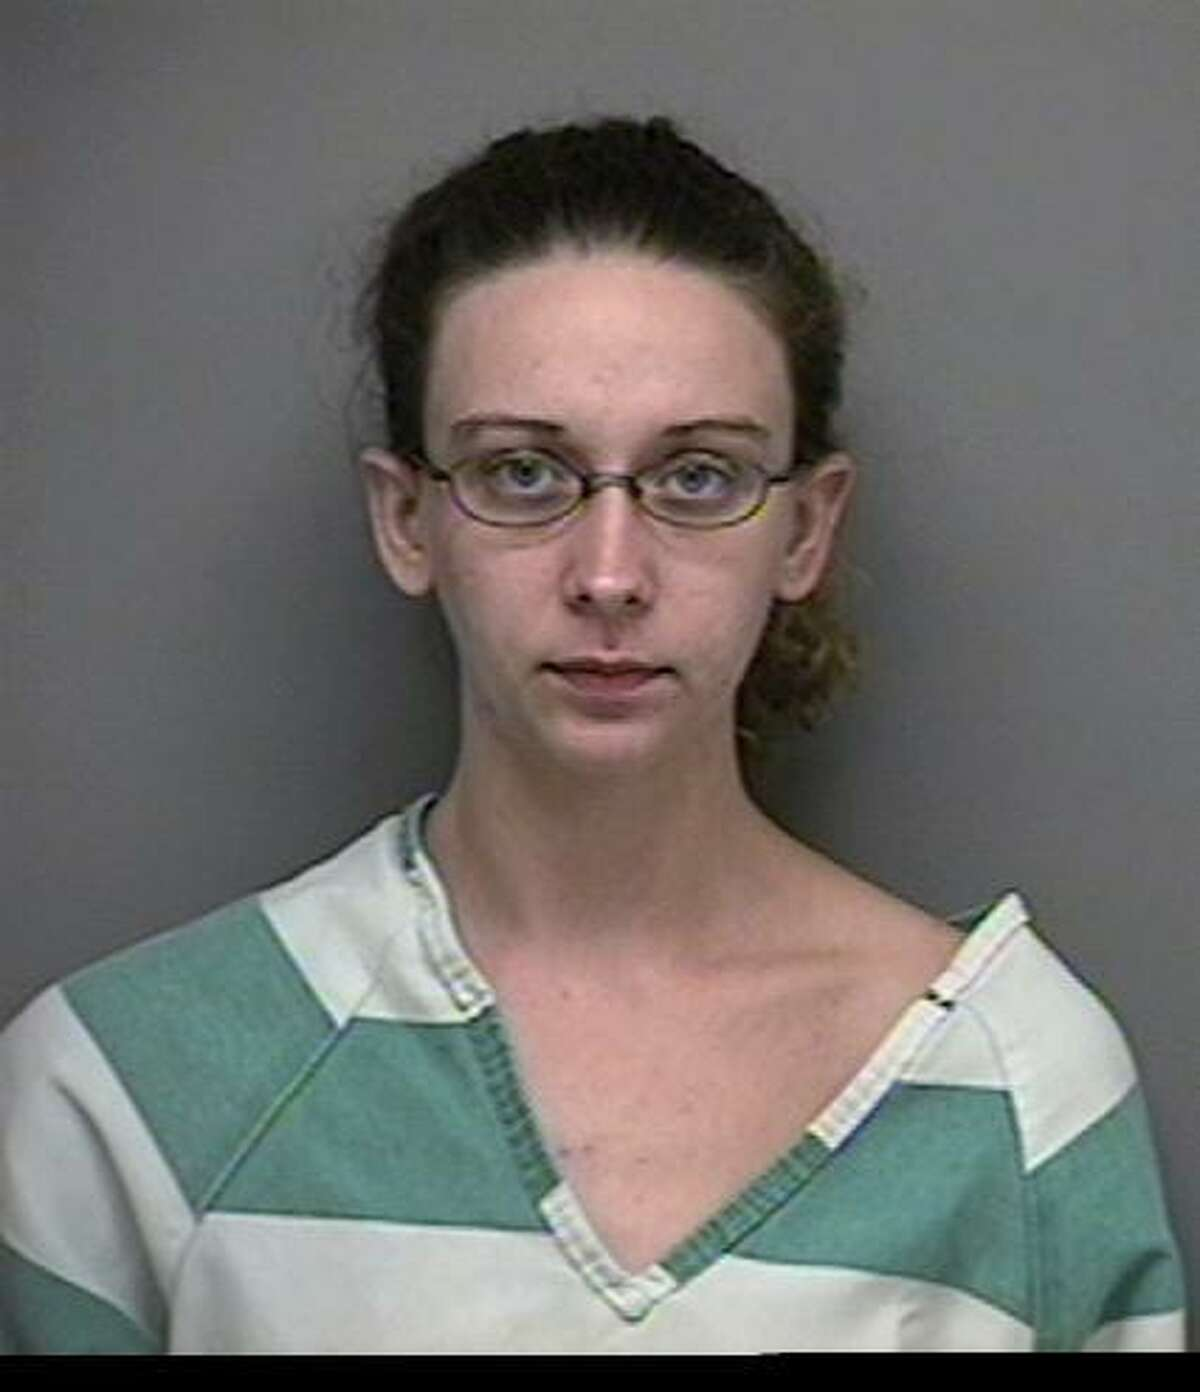 Lindsey Marlana Shirer is wanted by the Montgomery County Sheriff's Office on a charge of driving while intoxicated.